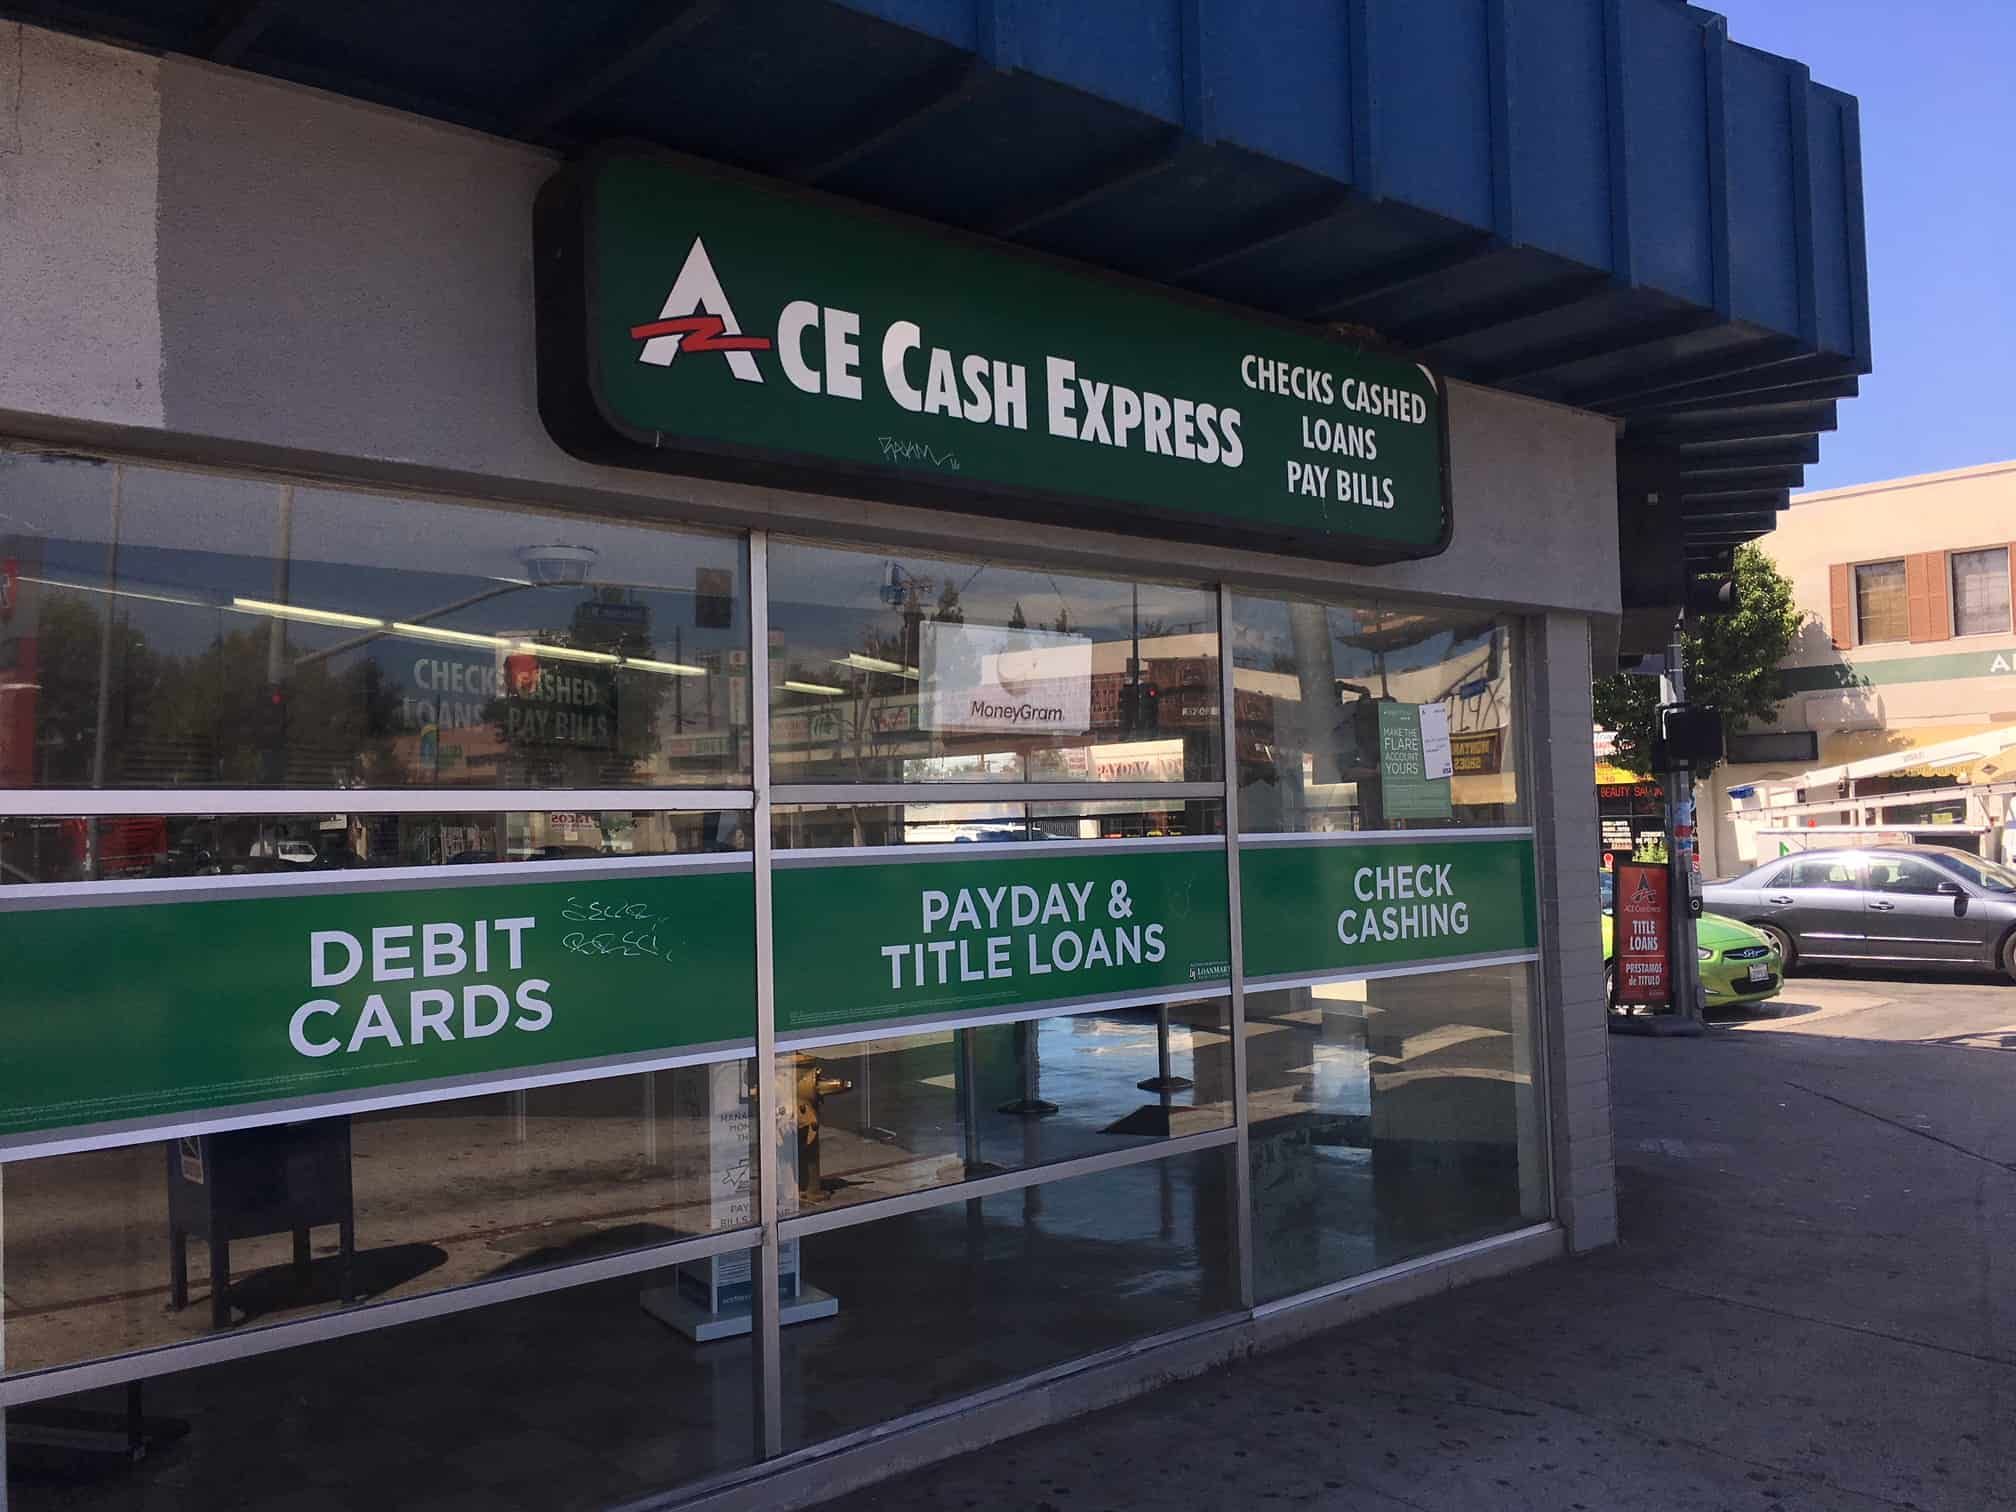 Defualt Ace Cash Express Location Image